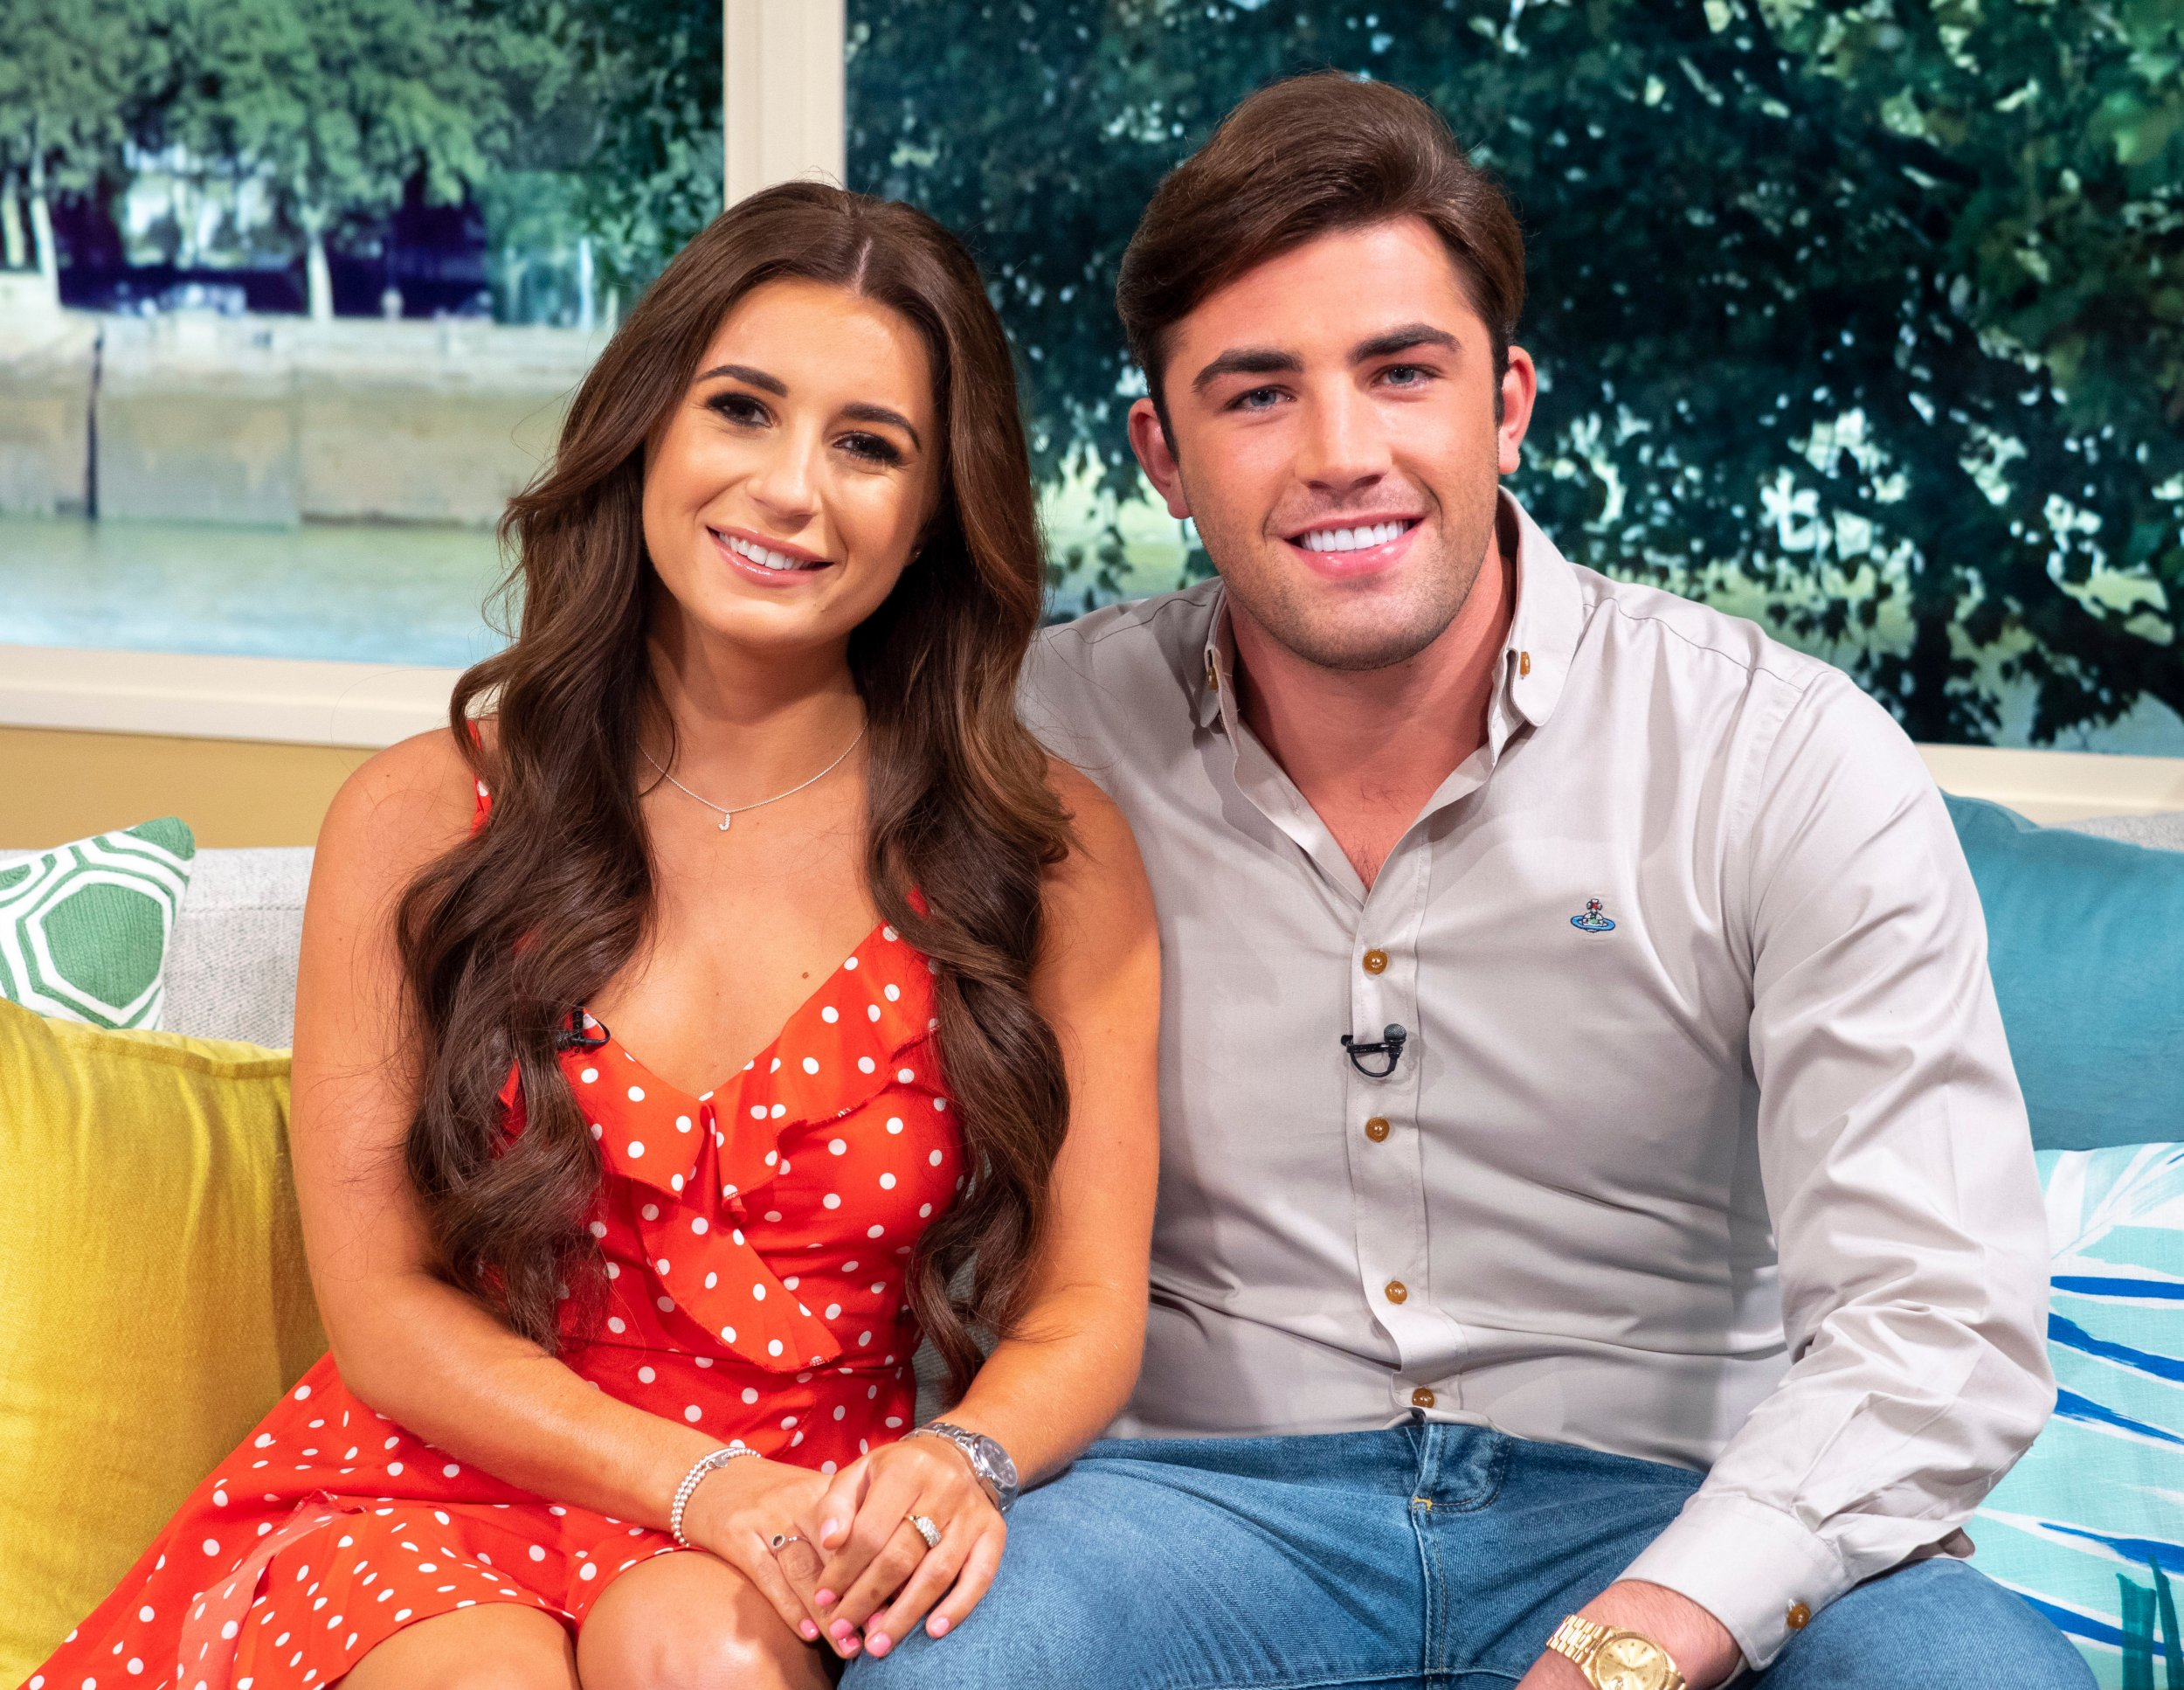 Editorial use only Mandatory Credit: Photo by Ken McKay/ITV/REX/Shutterstock (9848271x) Dani Dyer and Jack Fincham 'This Morning' TV show, London, UK - 03 Sep 2018 From day dot the nation became obsessed with Love Island winners Dani and Jack but after spending eight weeks following the ins and outs of their relationship all we want to know is WHAT ARE THEY DOING NOW?! At last, they join us for their first exclusive joint TV interview together and will be revealing how living together is going and will be addressing the rumours that they are apparently getting married next year.